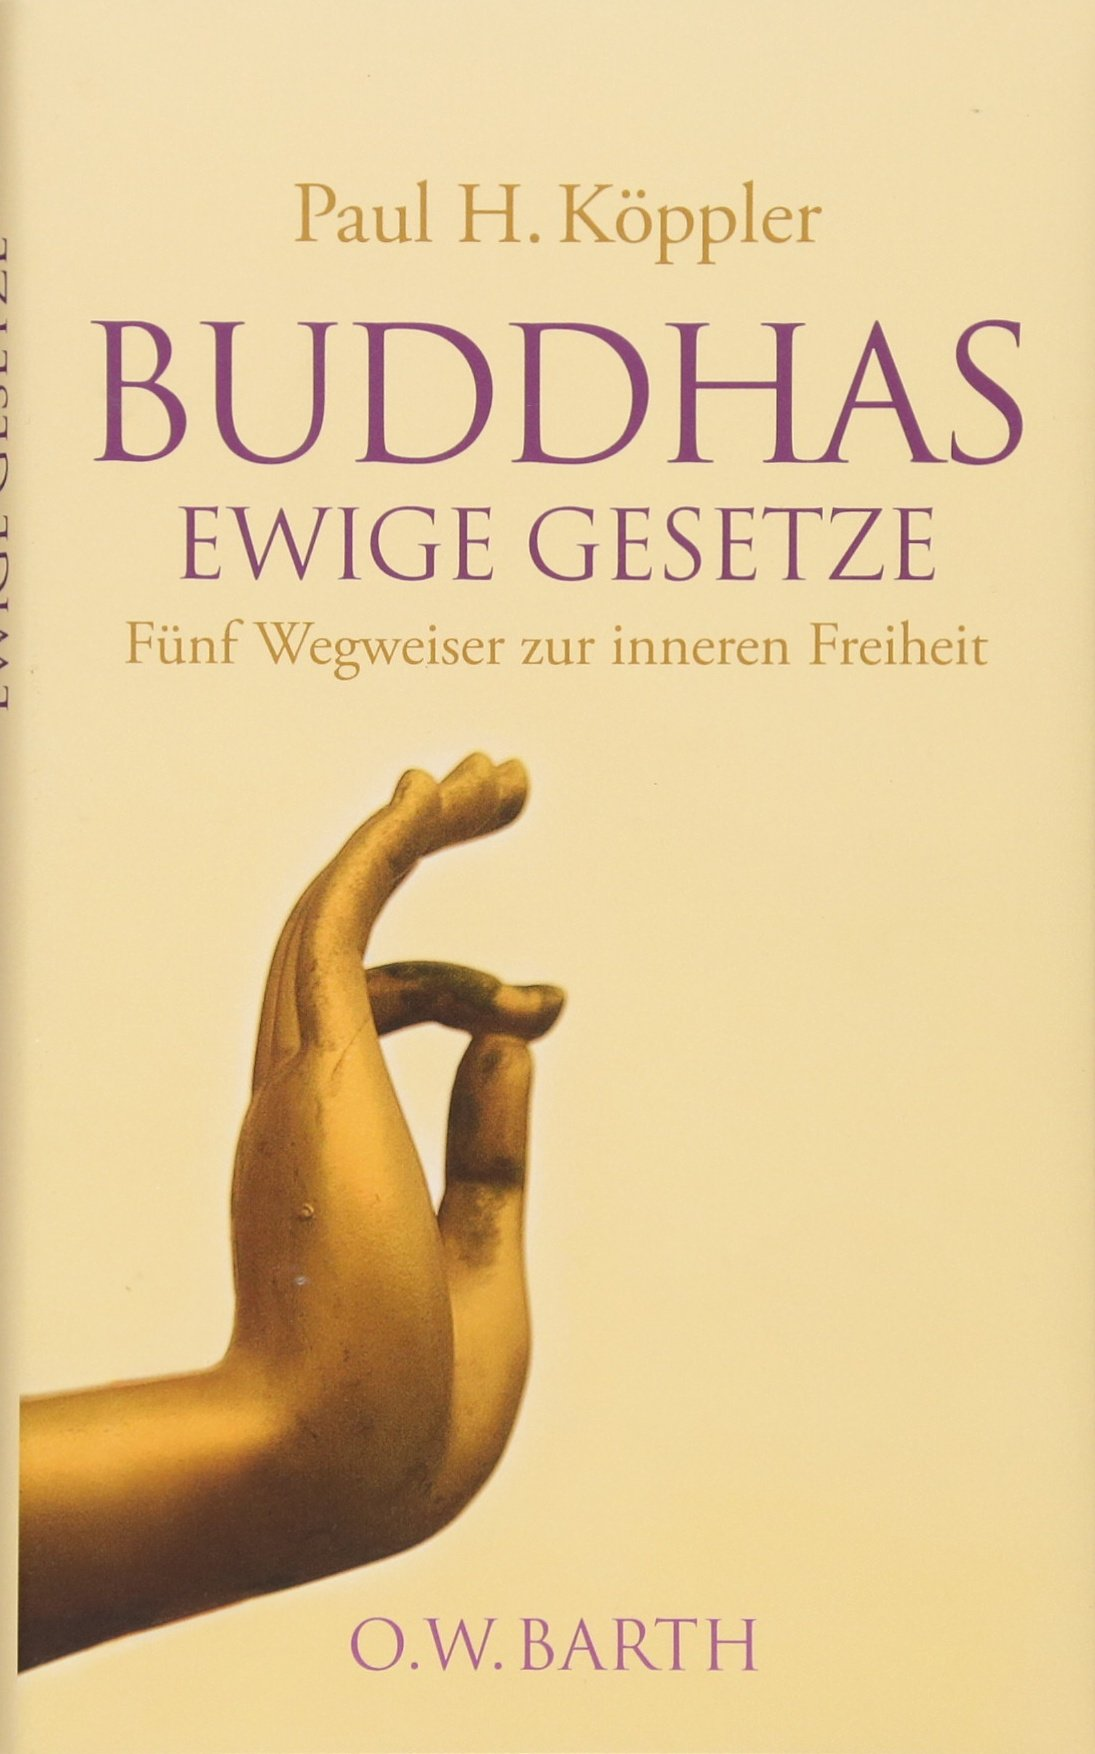 Image result for paul köppler buddhas ewigen gesetze